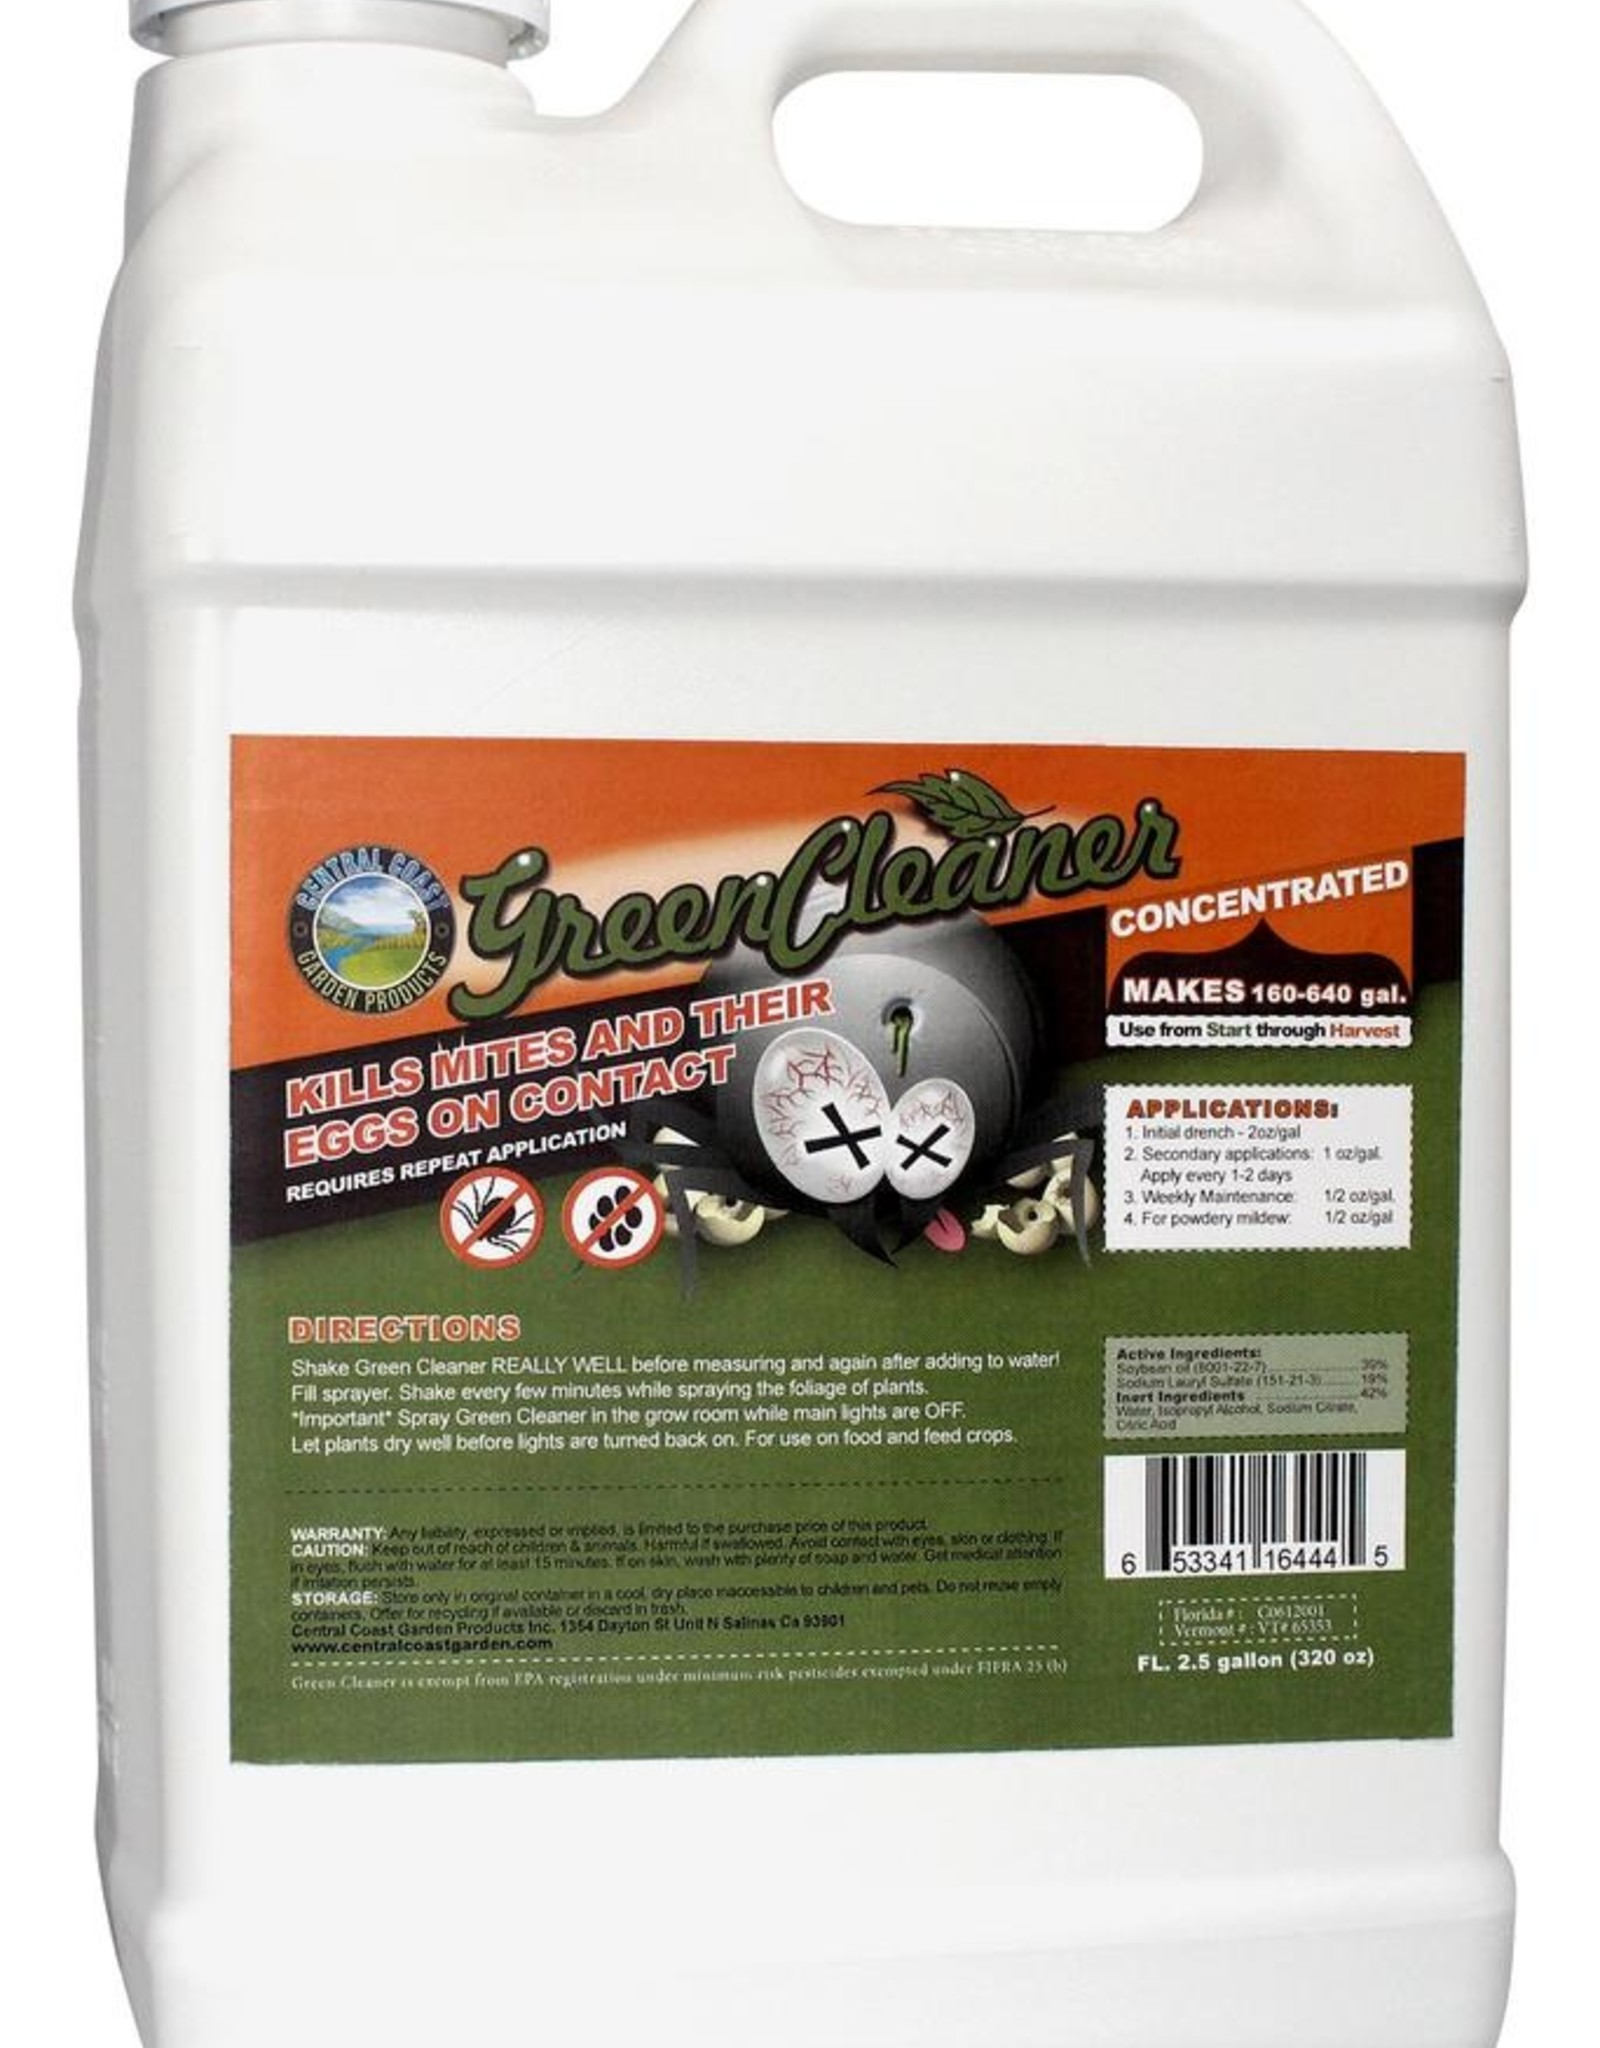 Central coast garden products Green Cleaner 2.5 Gallon